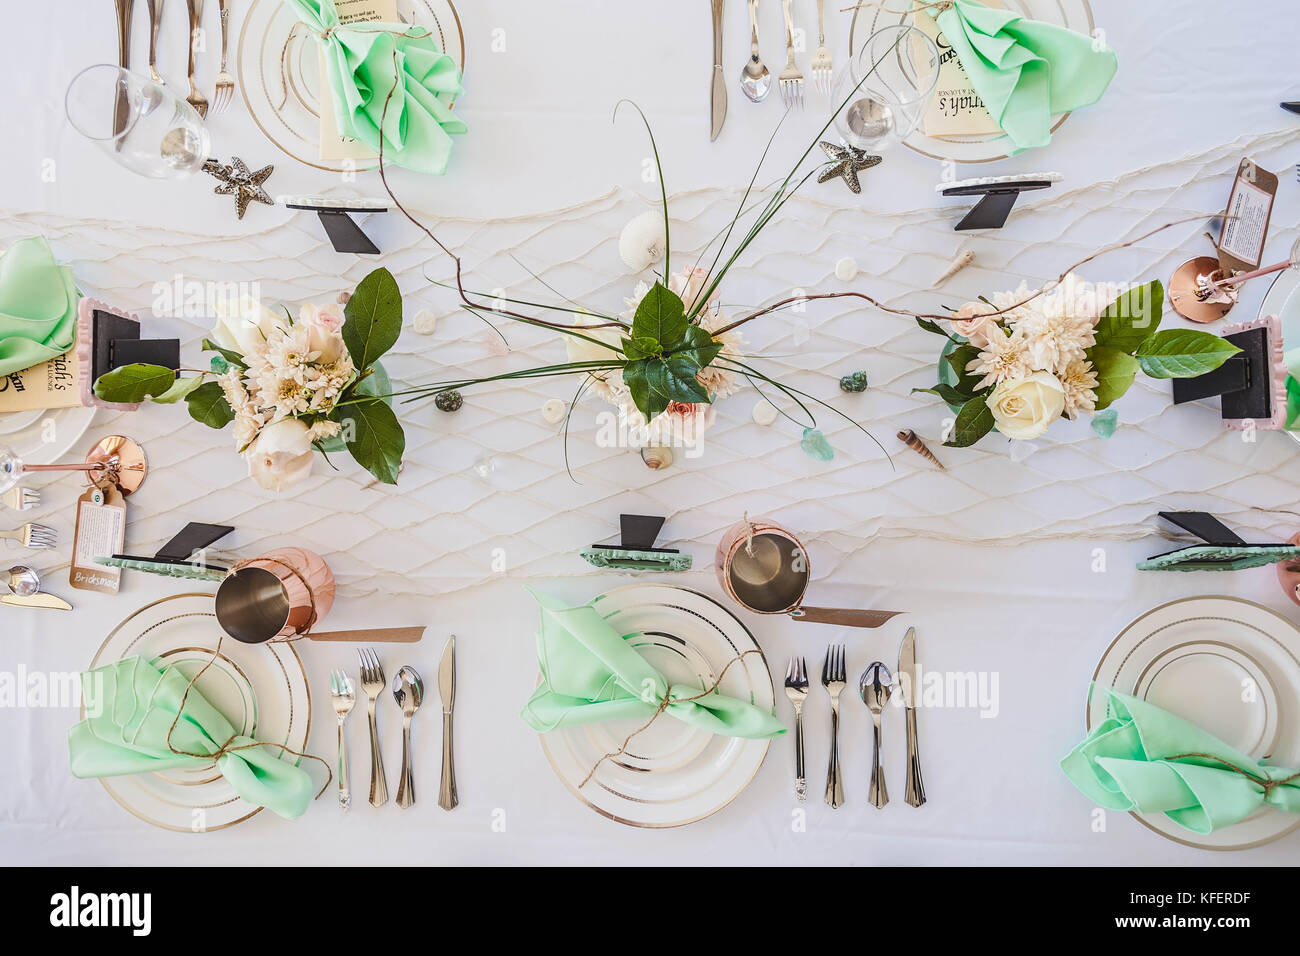 Elegant beach themed wedding table setting with mint green napkins ...